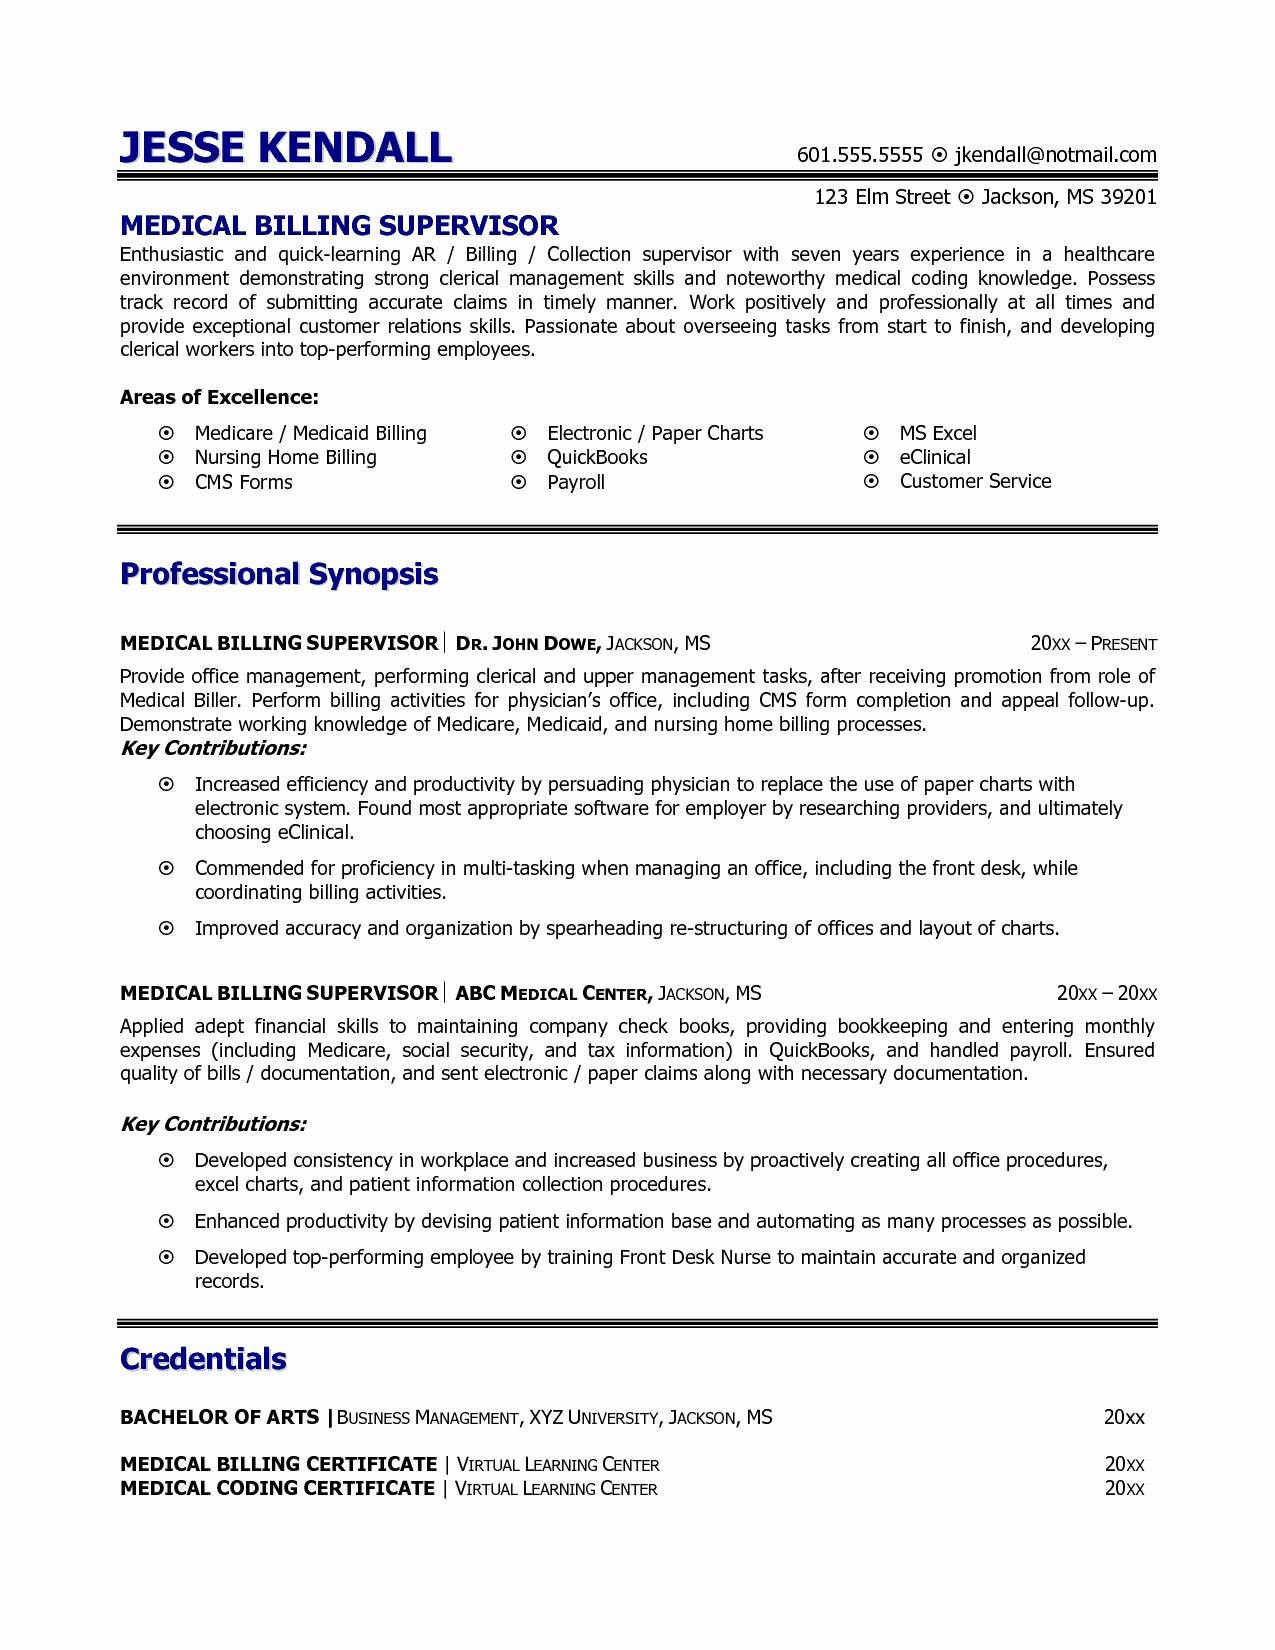 Coder Resume Sample - Medical Coding Resume Samples Best Job Description Medical